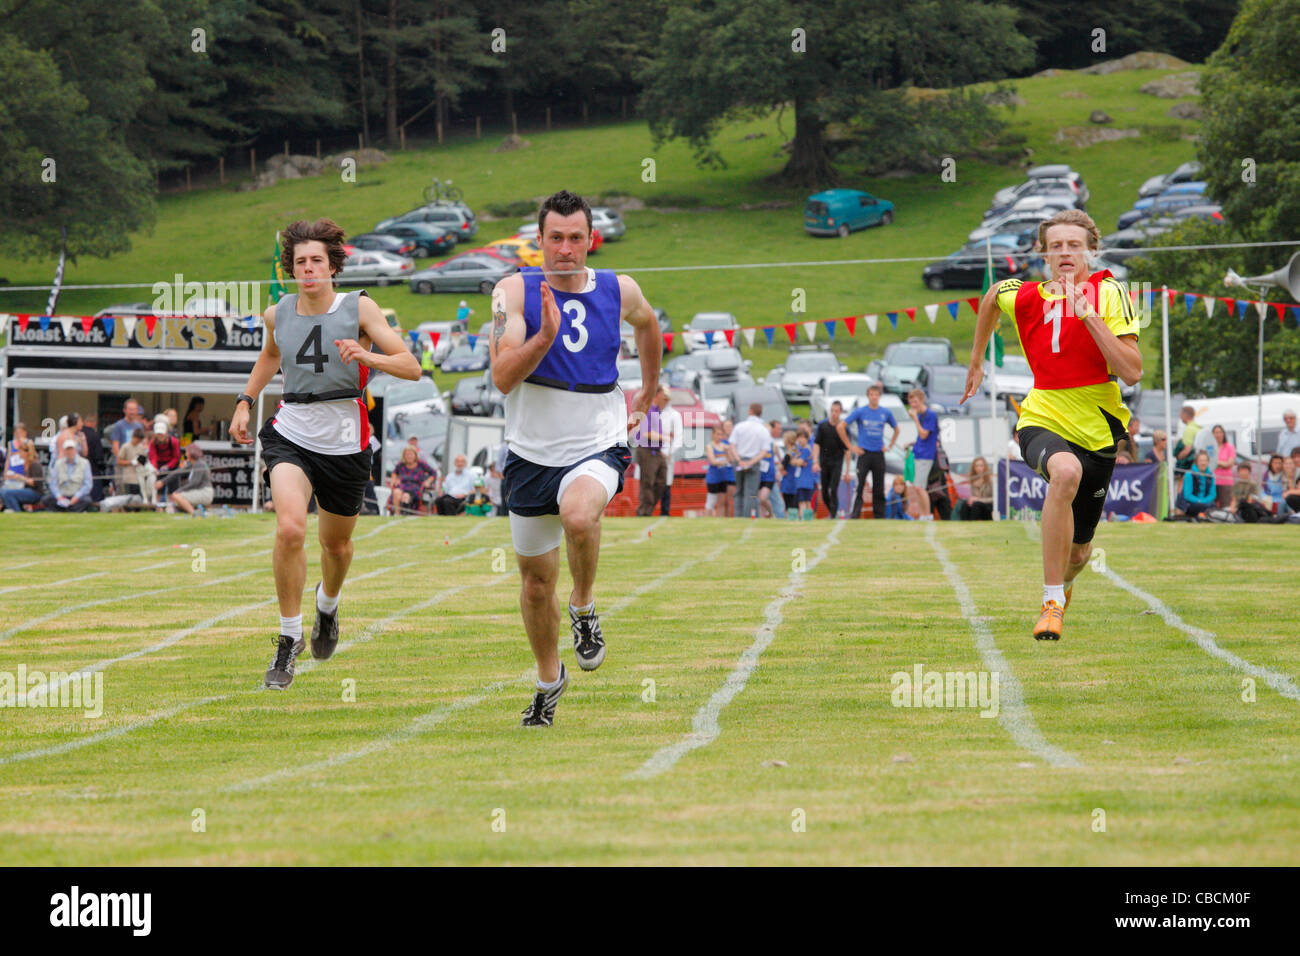 Athletes racing at Ambleside Sports, The Lake District, Cumbria, England, UK - Stock Image